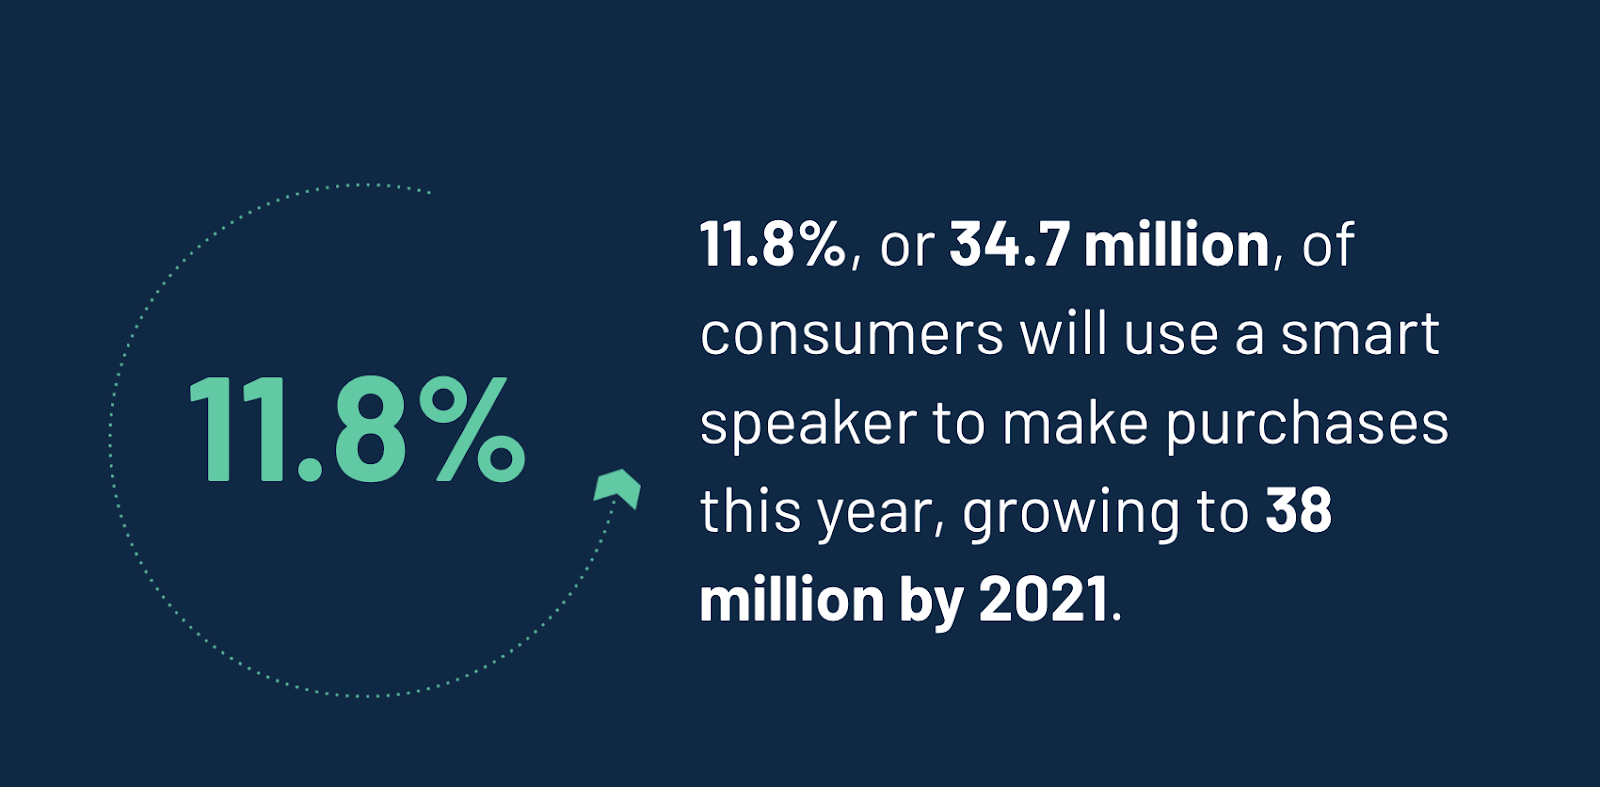 11.8% of consumers will use a smart speaker to make purchases this year, growing to 38 million by 2021.